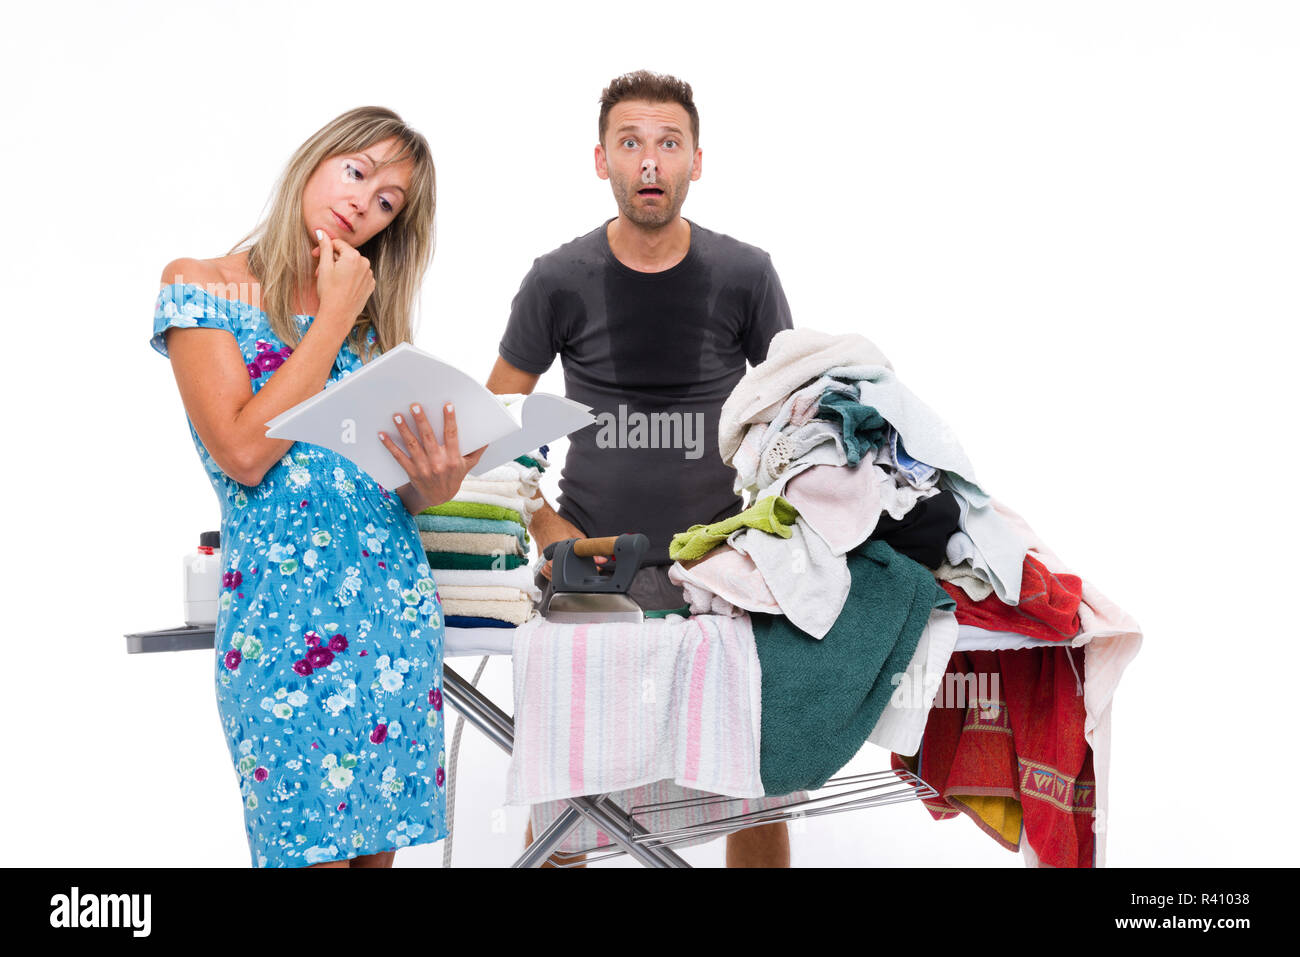 woman reading a newspaper, while a man shocked and sweating to iron - Stock Image